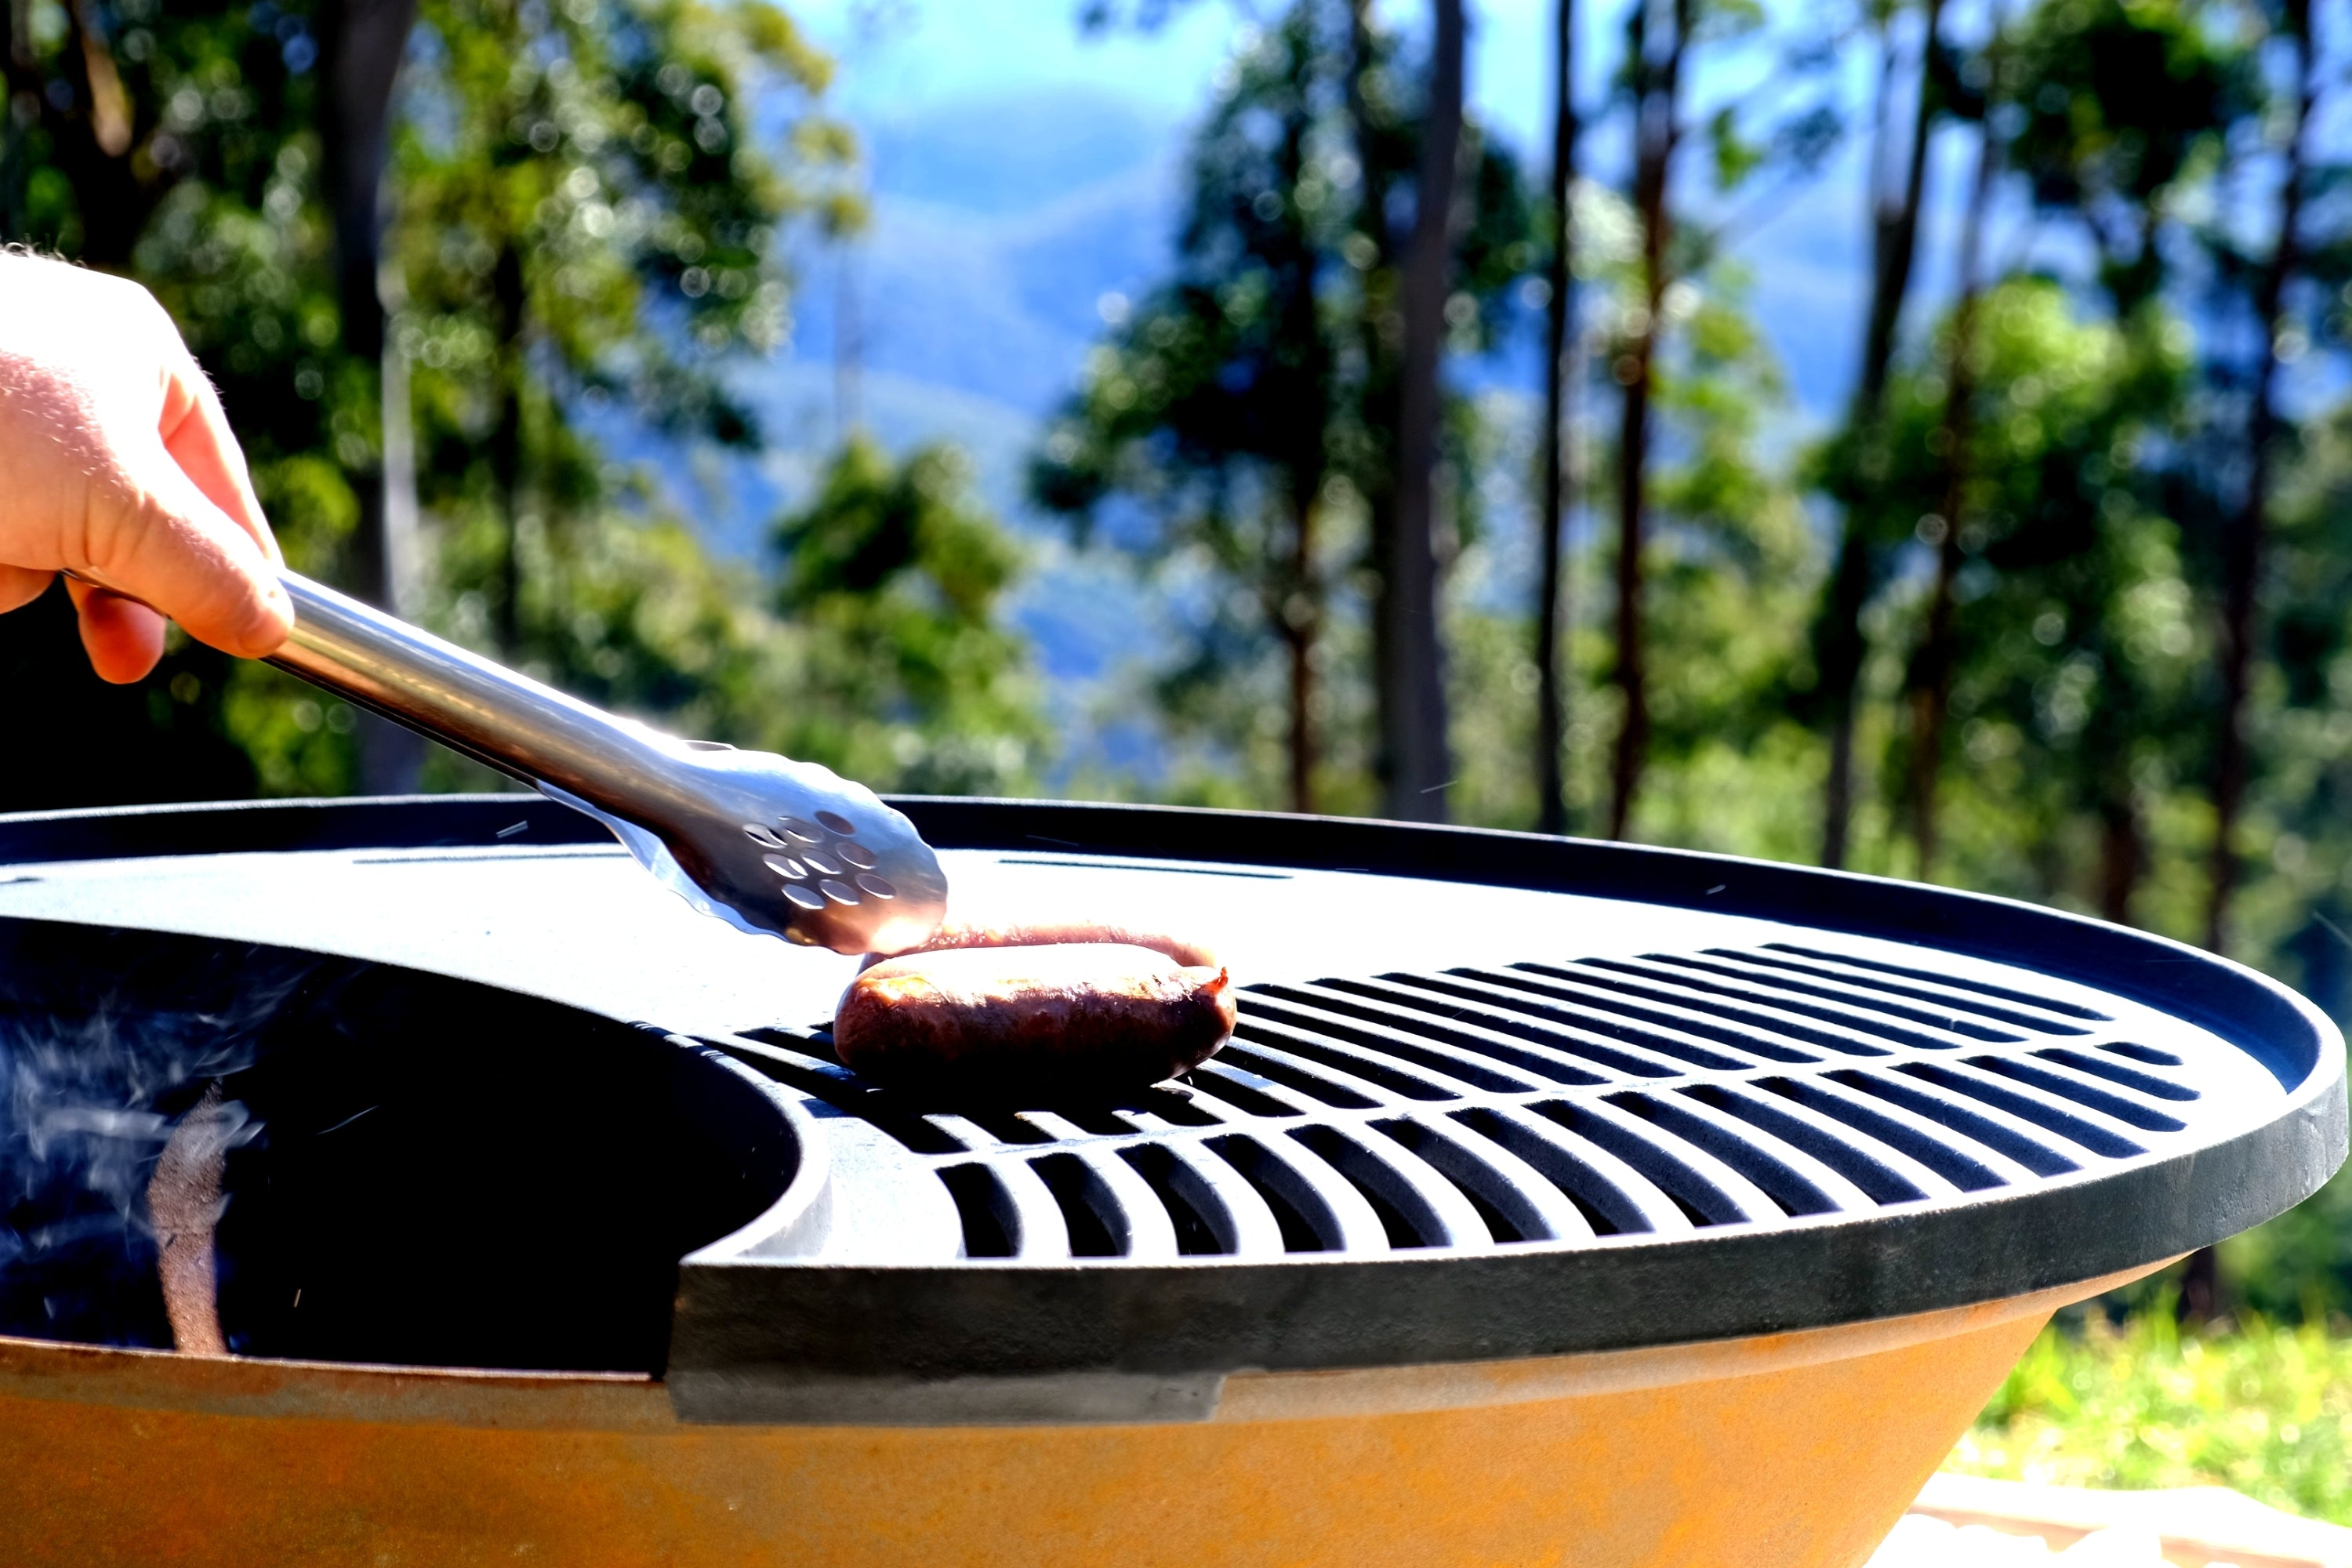 Cooking on The Fire Pit Grill